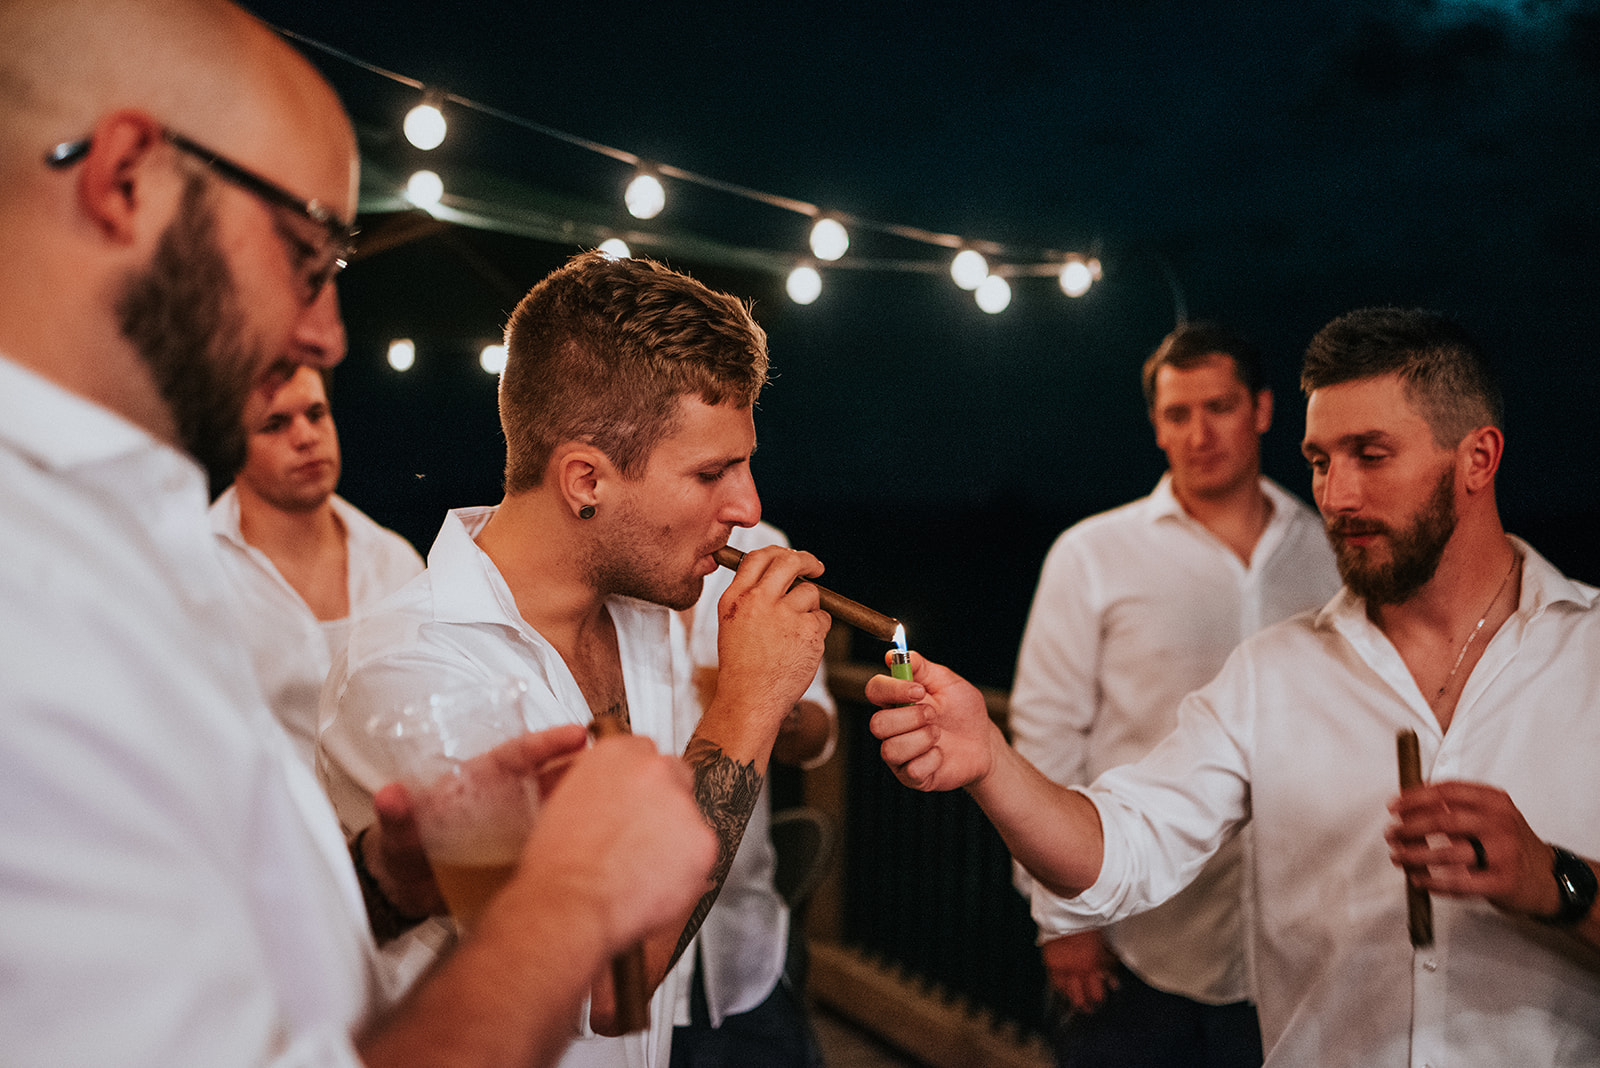 overthevineswisconsinwedding_1659.jpg